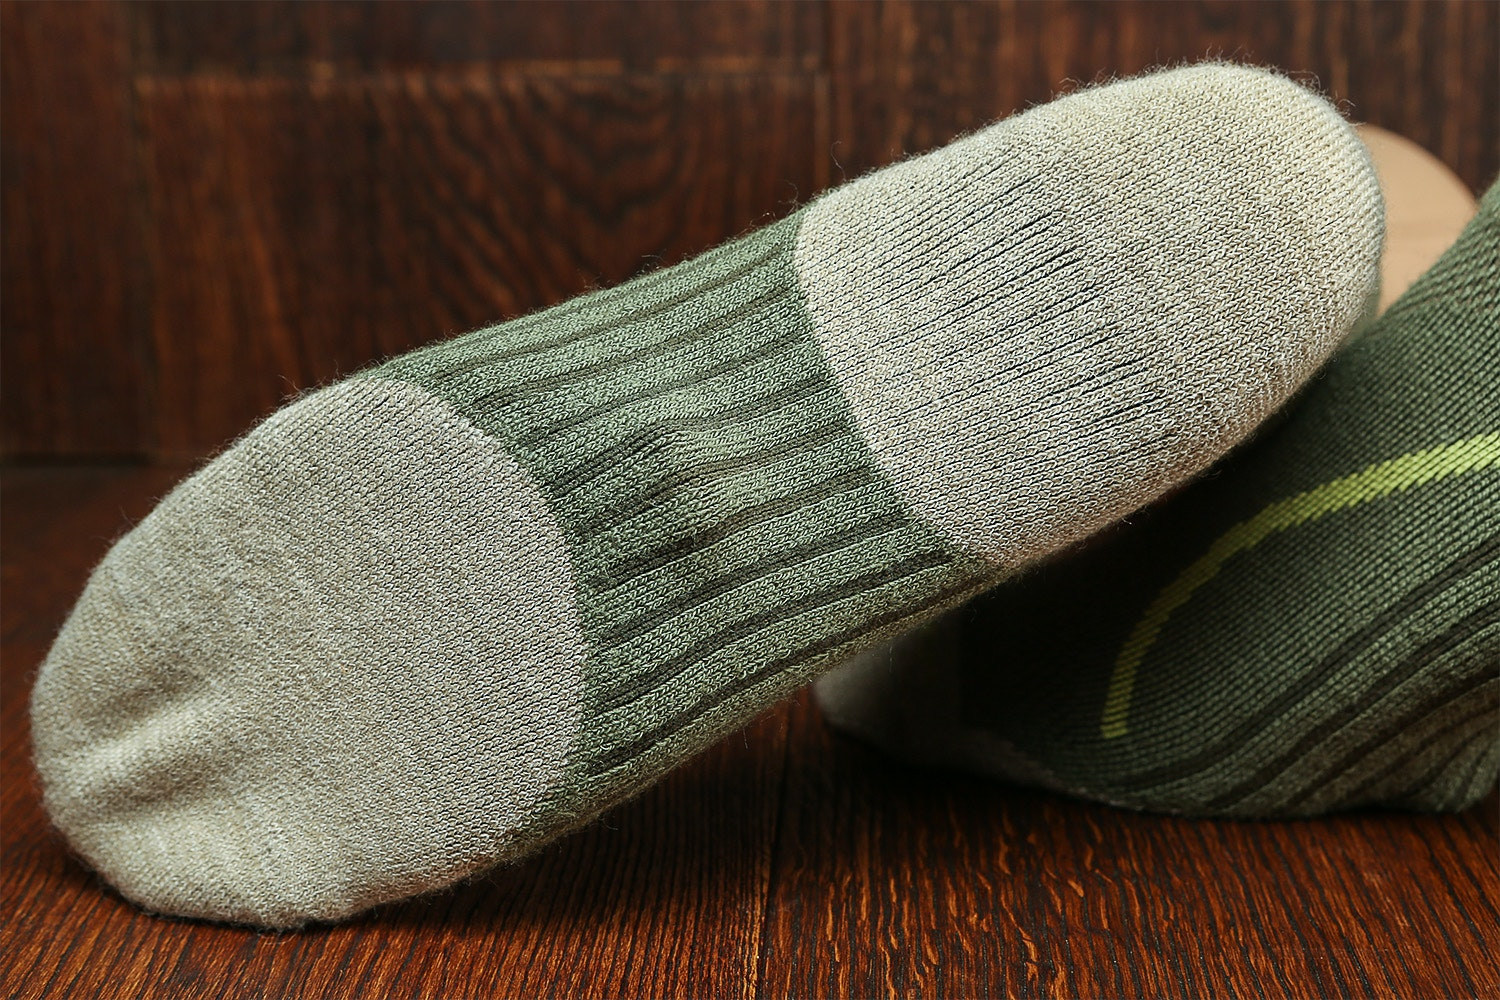 Fox River Basecamp 1/4 Socks (2-pack)